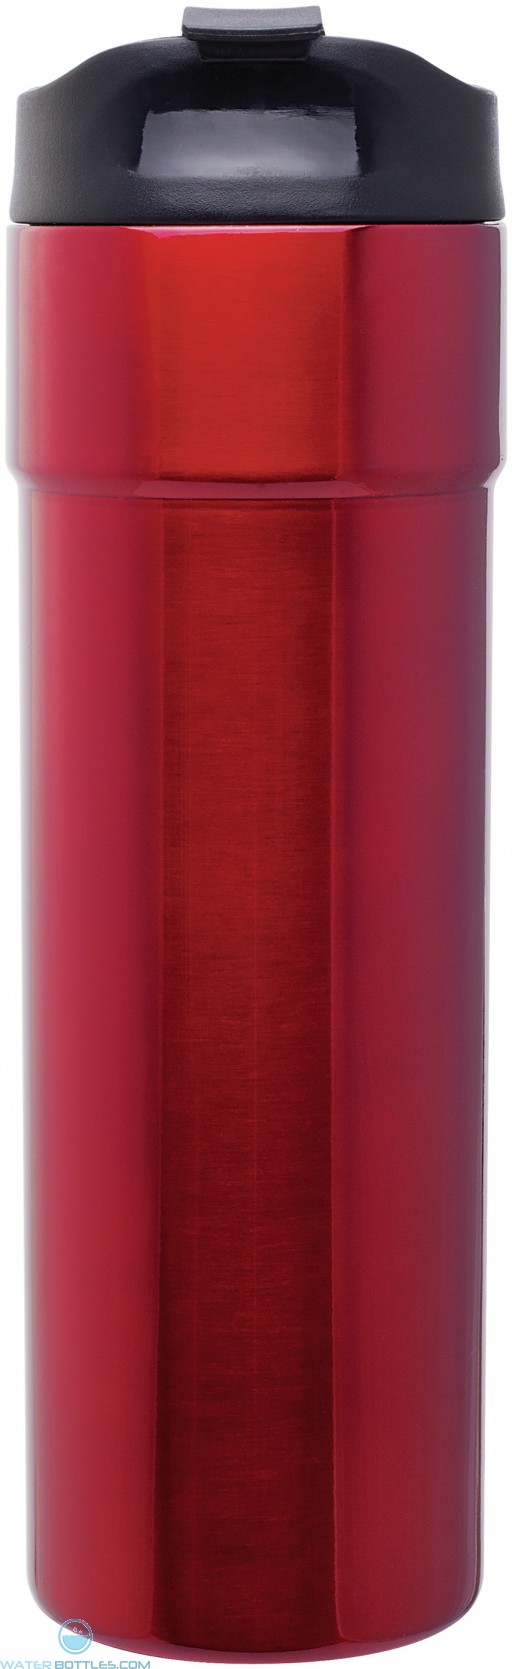 Milano Foam Insulated Tumblers | 14 oz - Red